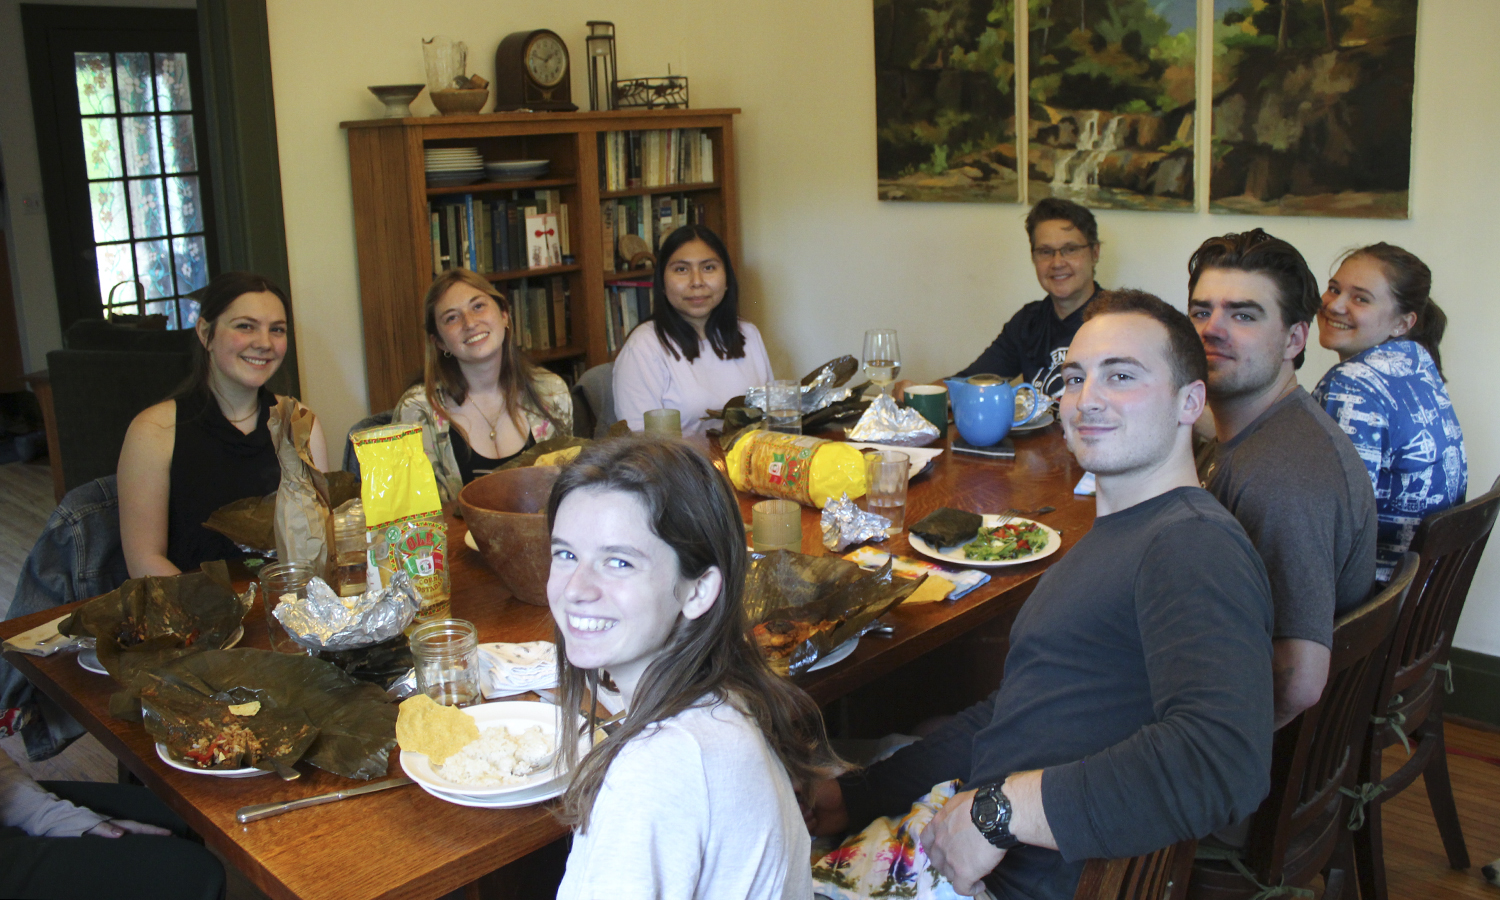 The Arens-Kendrick summer research group (and friends) gather for weekly lab dinners in the Arens-Kendrick home. This week the menu featured authentic Guatemalian tamales made by Catalina Garcia Tomas and Professor of Geoscience Nan Crystal Arens. Around the table from far left: Sam Sorensen, Maddi Meyer, Catalina Garcia, N.C. Arens, Rose Kendrick (my daughter), Chase Bell, Mark Suchewski, and Kate Clayton.